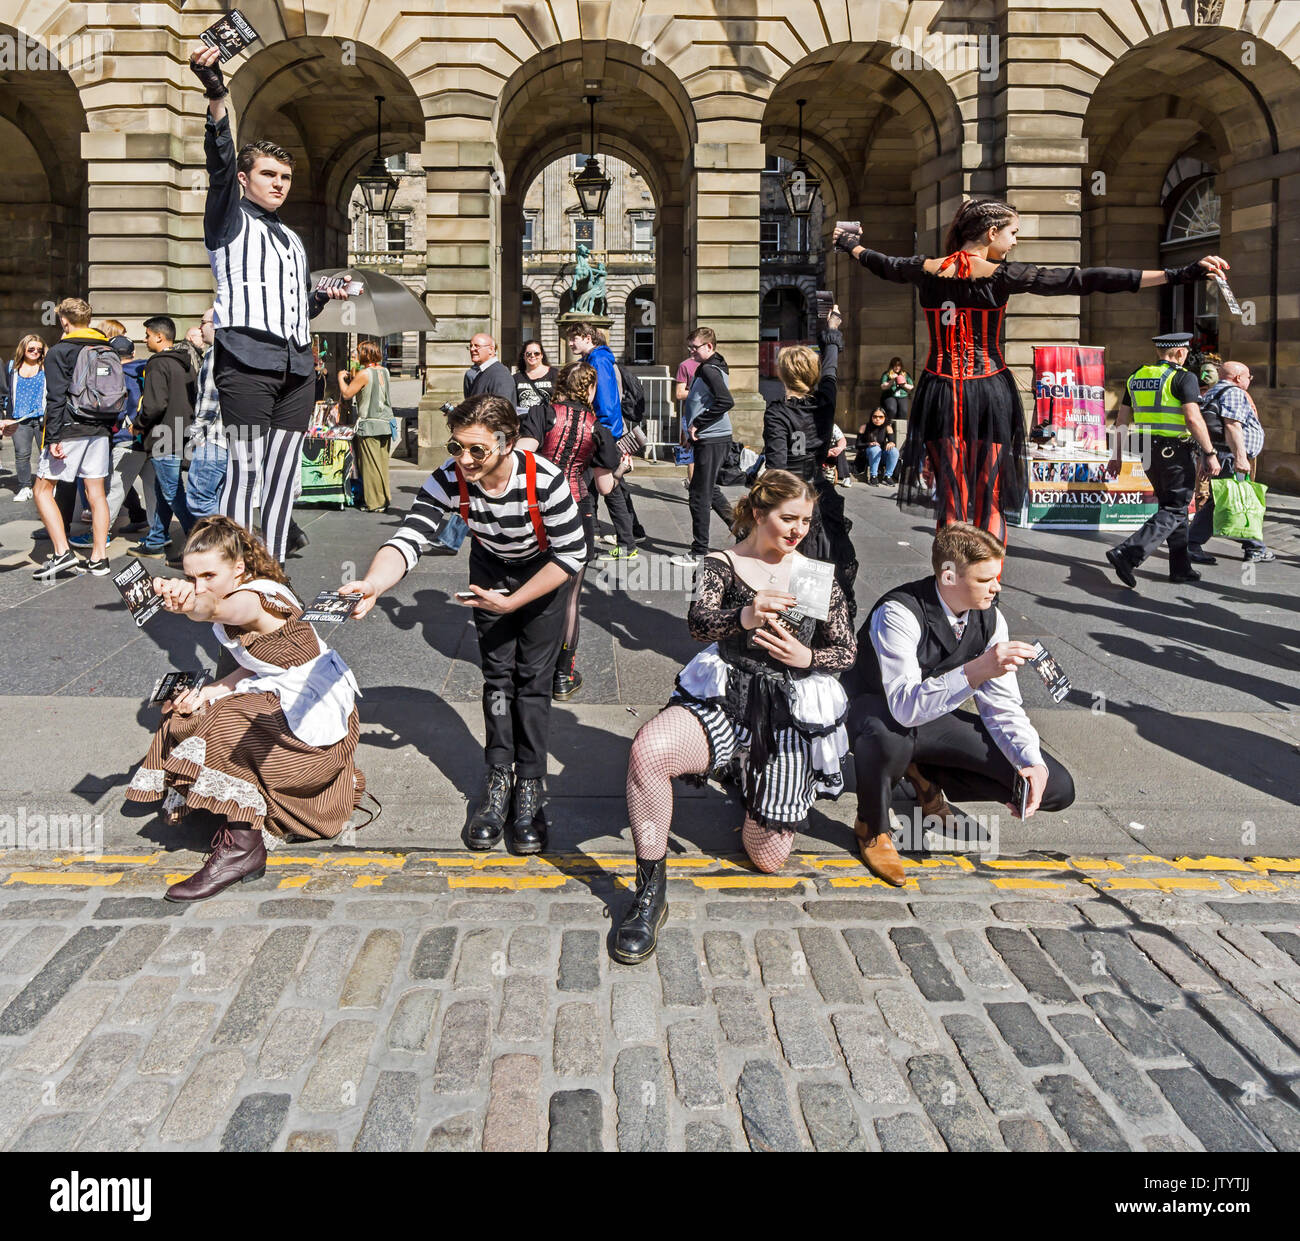 Off the Page Productions promoting Typhoid Mary show at Edinburgh Festival Fringe 2017 in the High Street of the Royal Mile Edinburgh Scotland UK - Stock Image